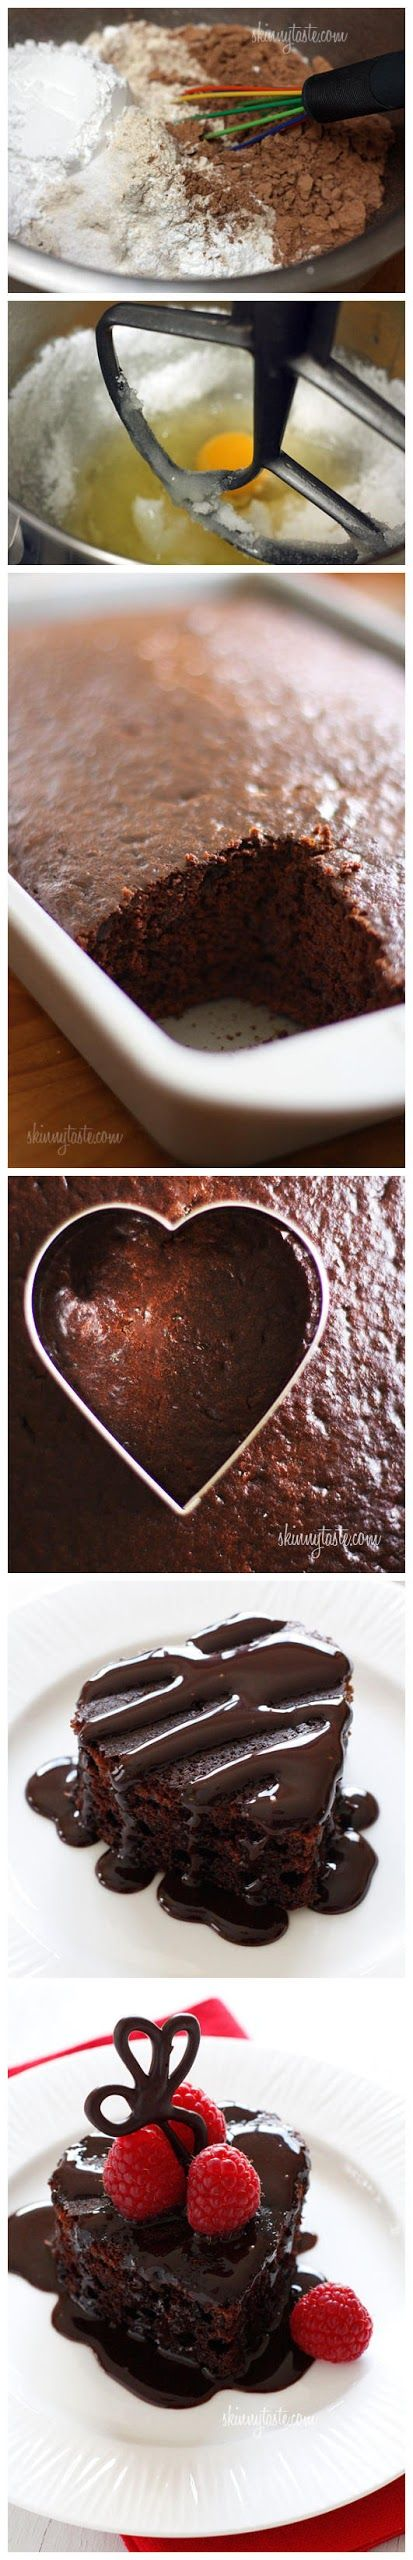 Homemade Skinny Chocolate Cake | Homemade cake | Pinterest